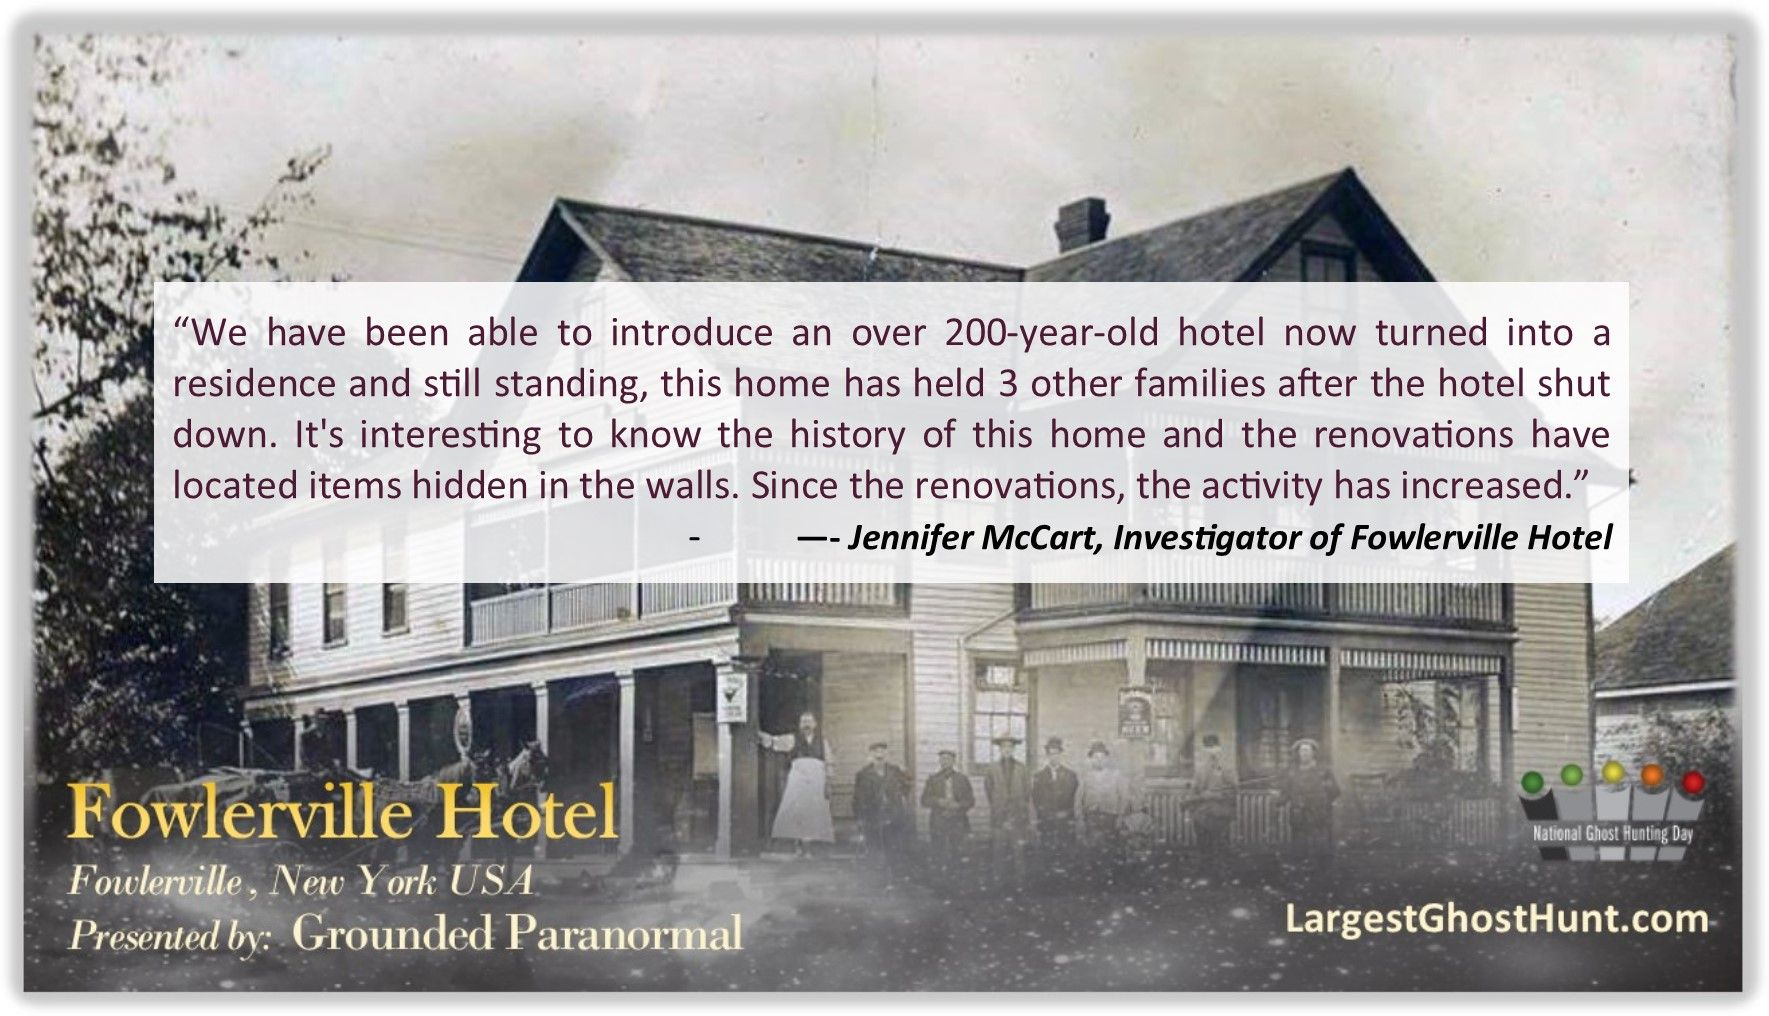 Fowlerville Hotel